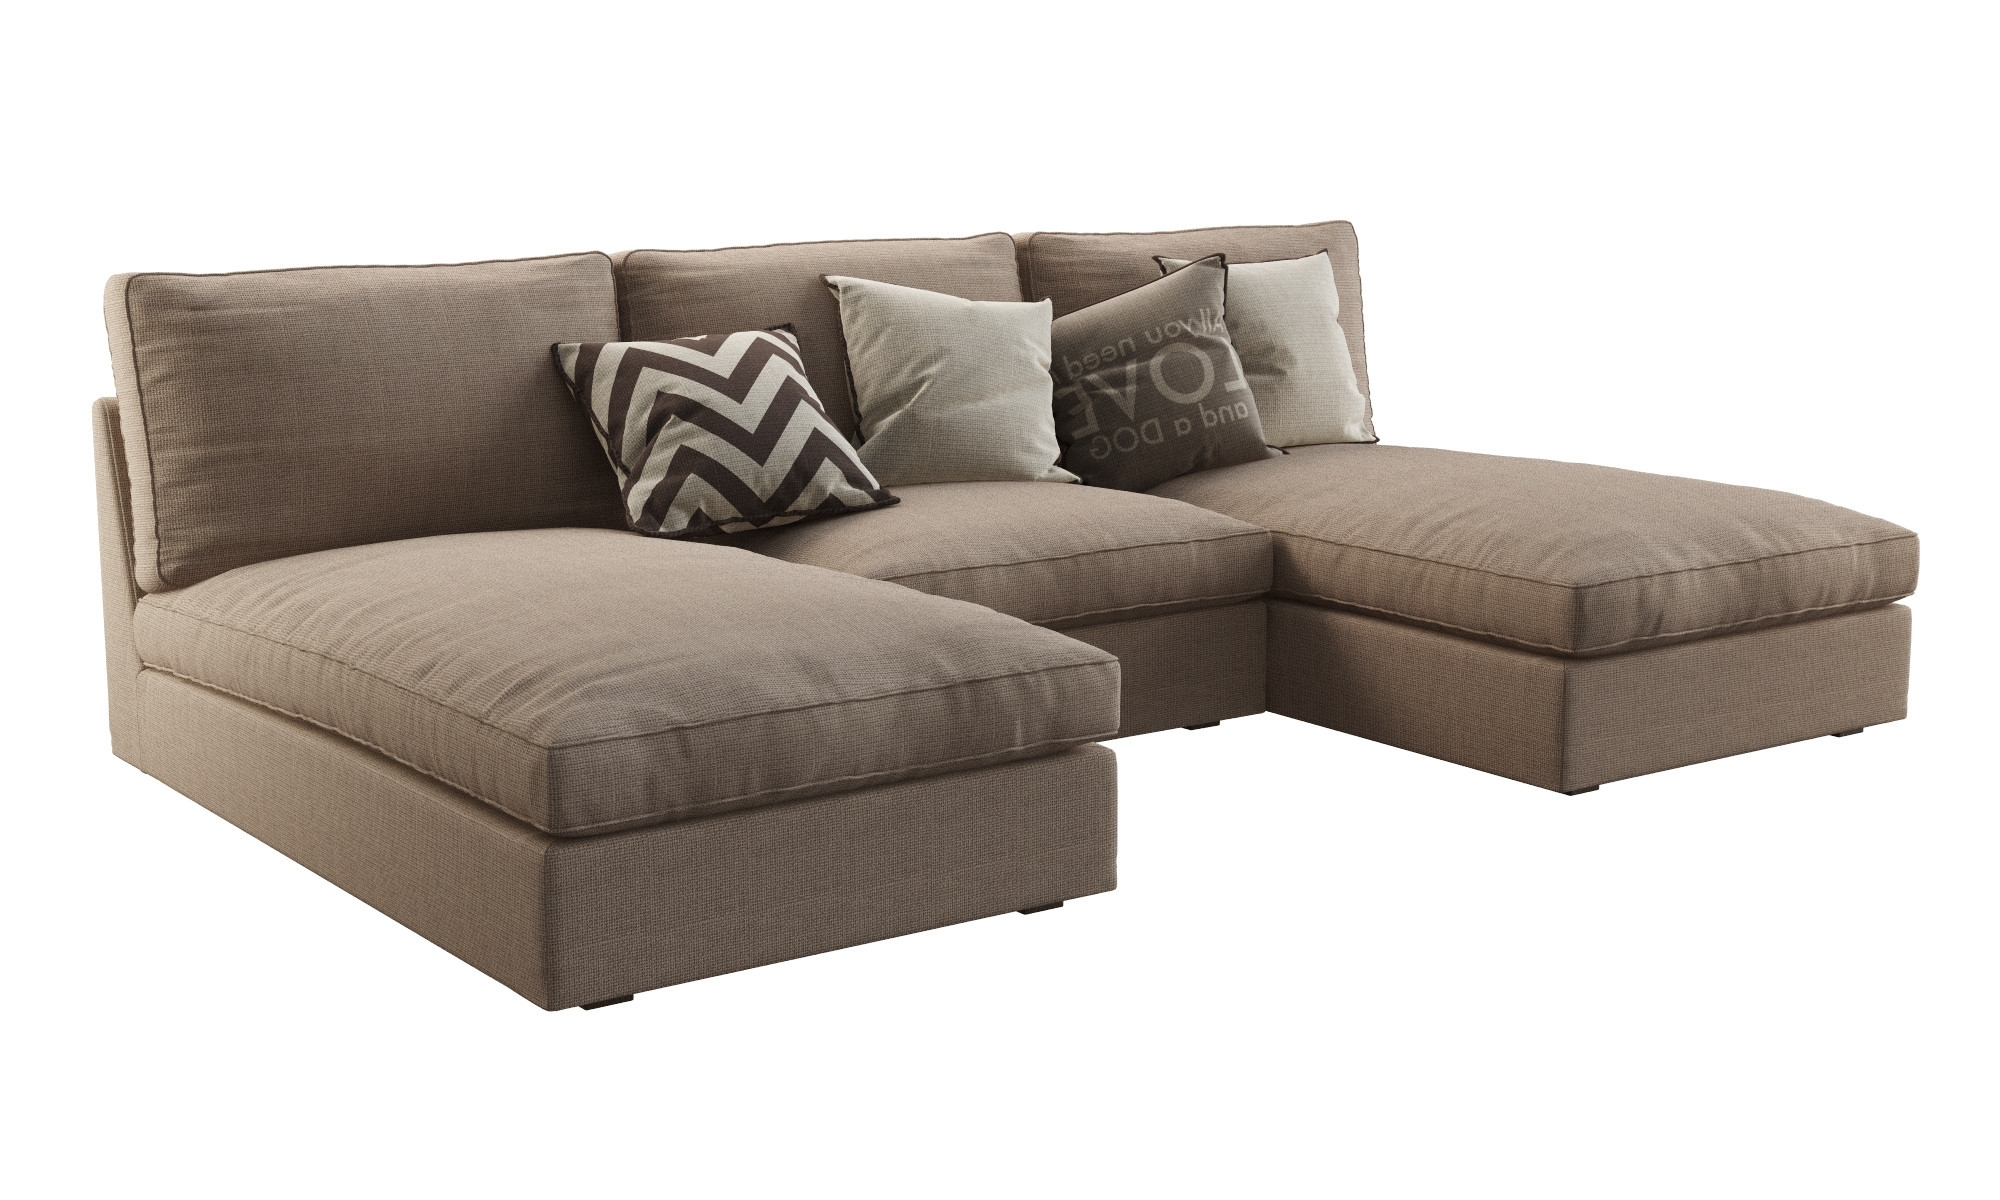 Well Known Ikea Chaise Lounge Chairs Pertaining To Ikea Chaise Lounge – Ikea Chaise Lounge Covers, Ikea Poang Chair (View 10 of 15)